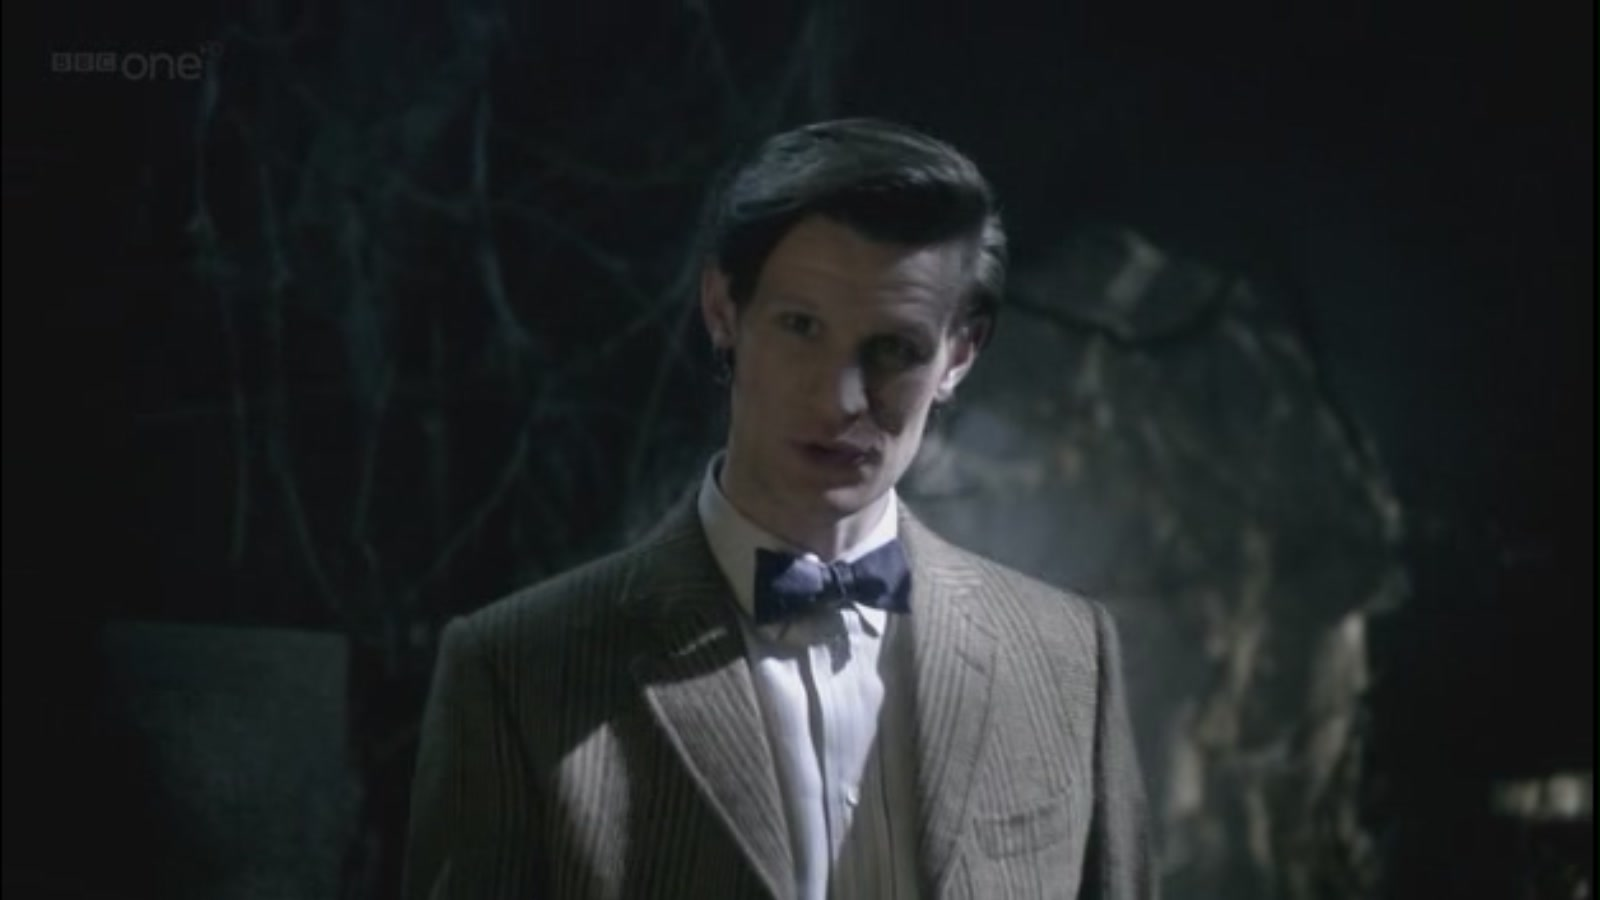 6x13 The Wedding of River Song